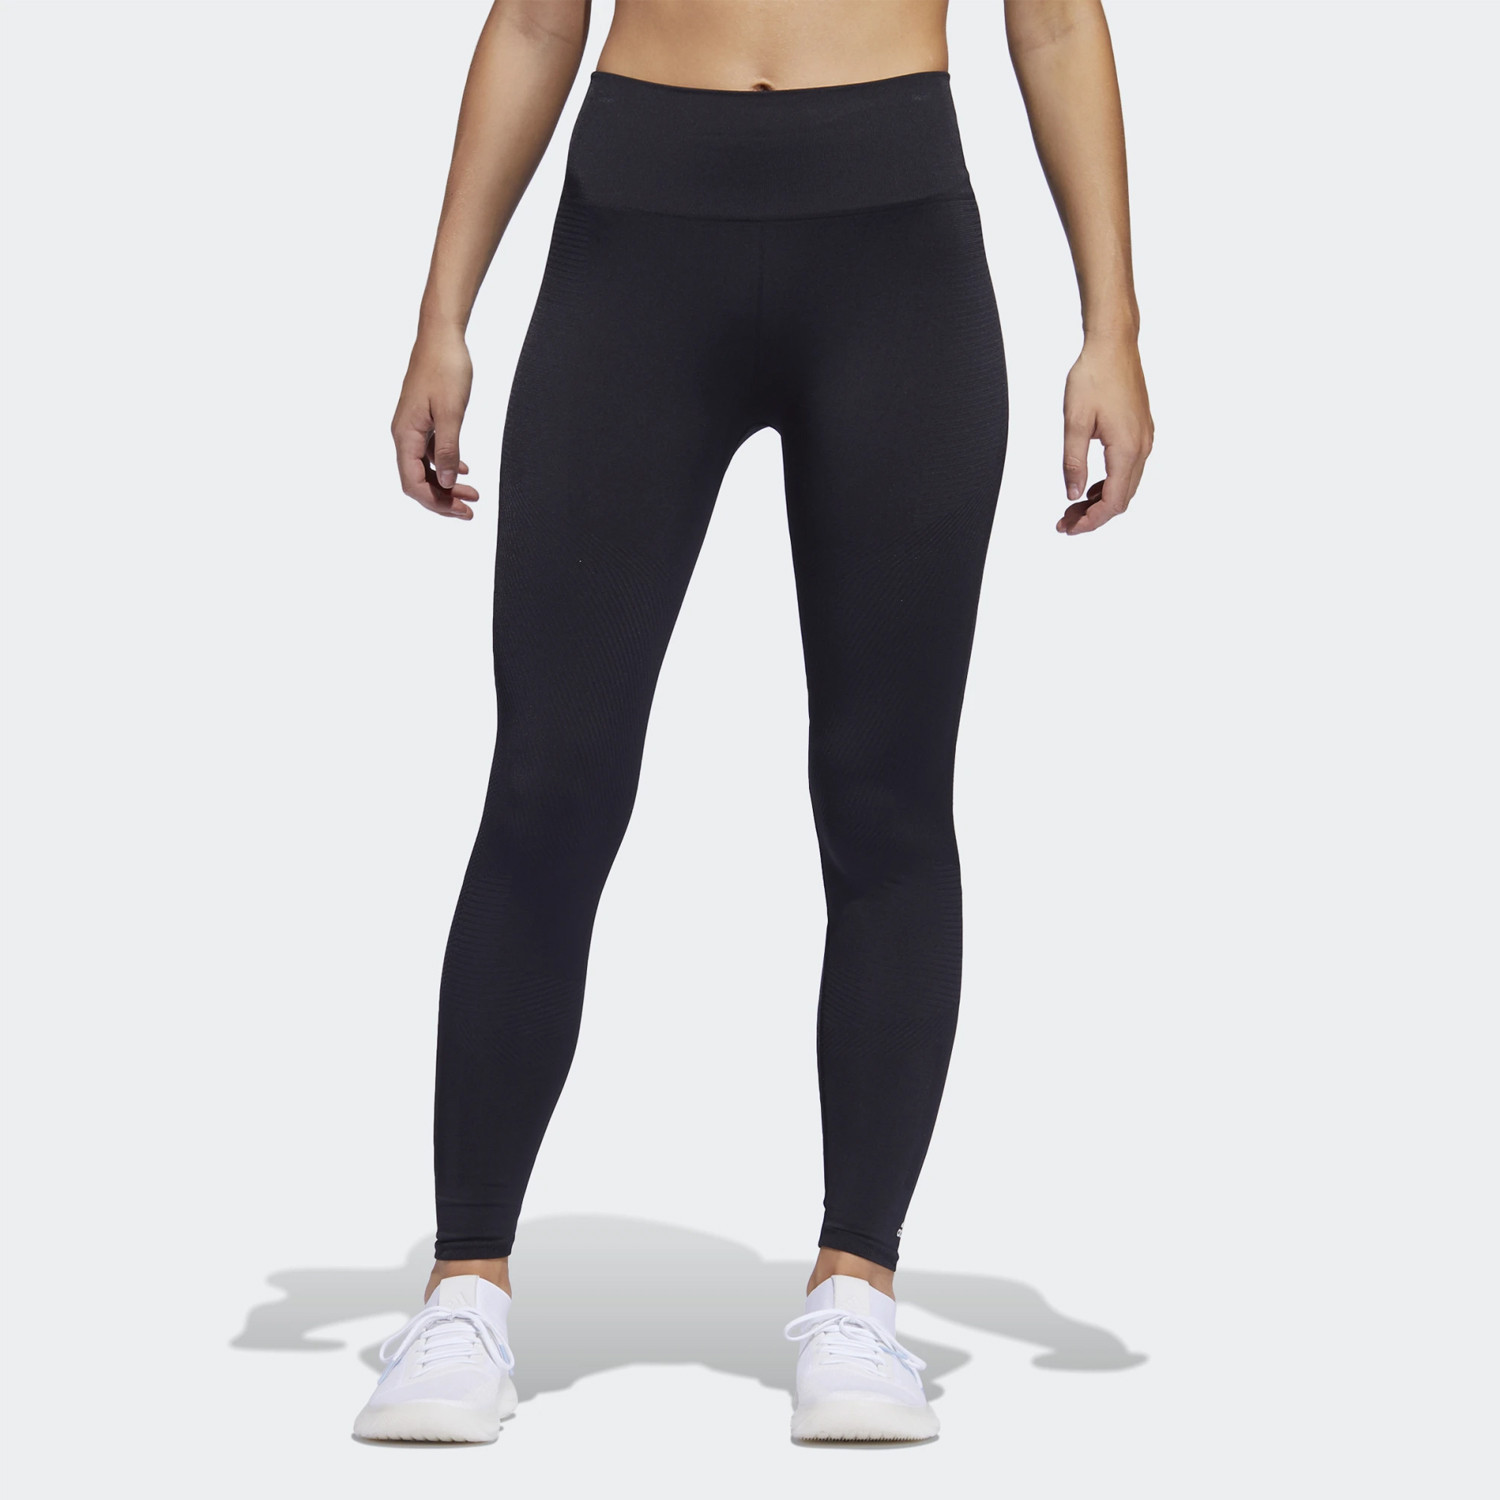 adidas Performance Believe This Primeknit Flw Women's 7/8 Tights (9000045109_1469)